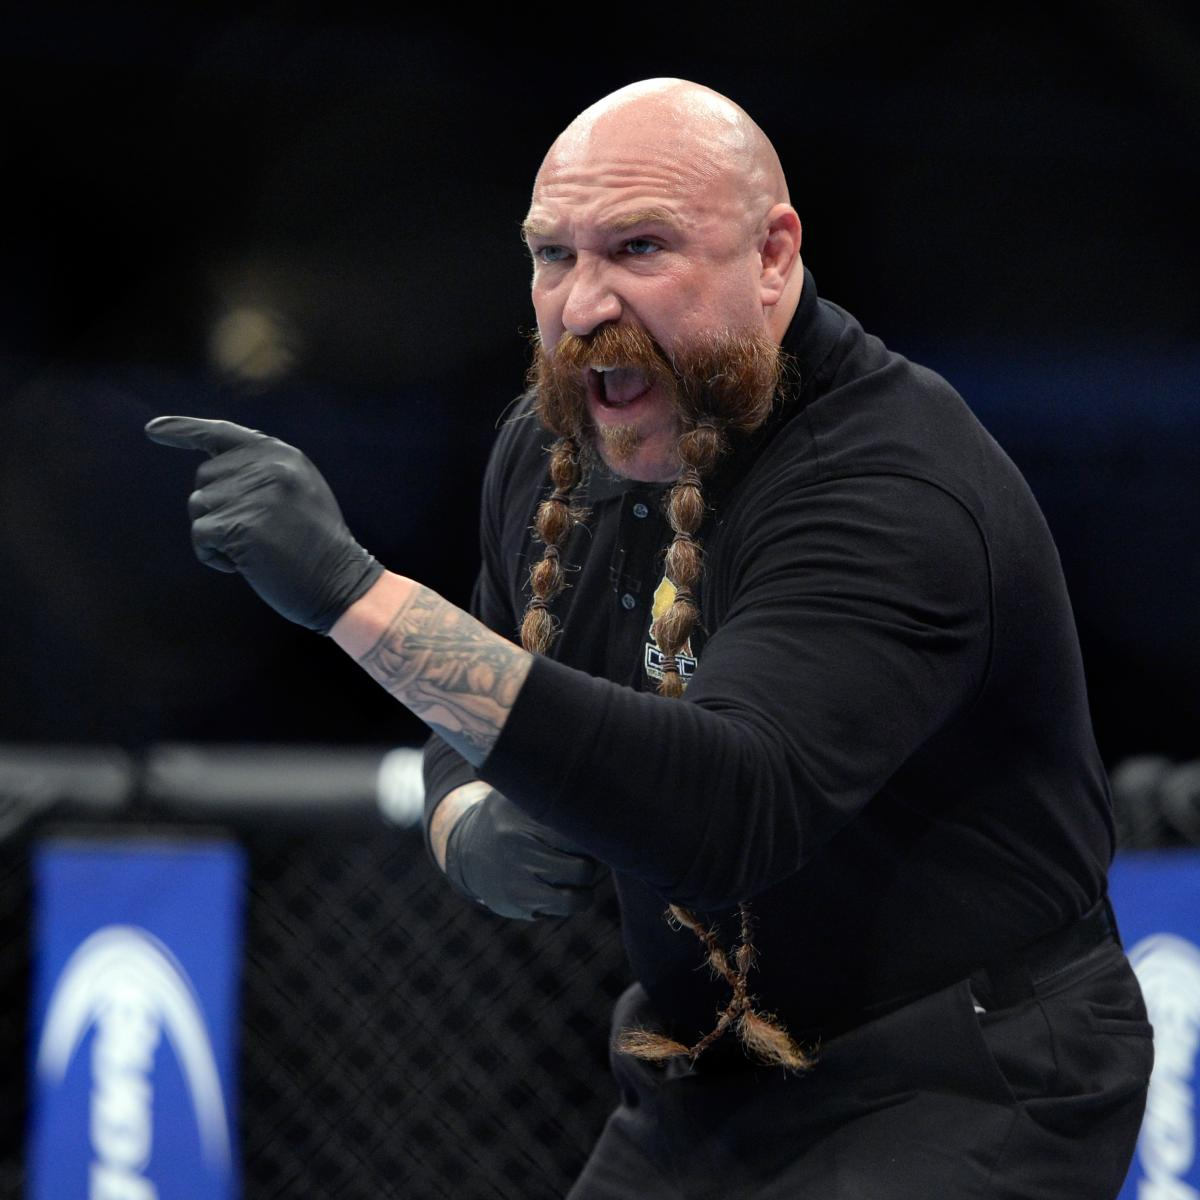 Referee Mike Beltran